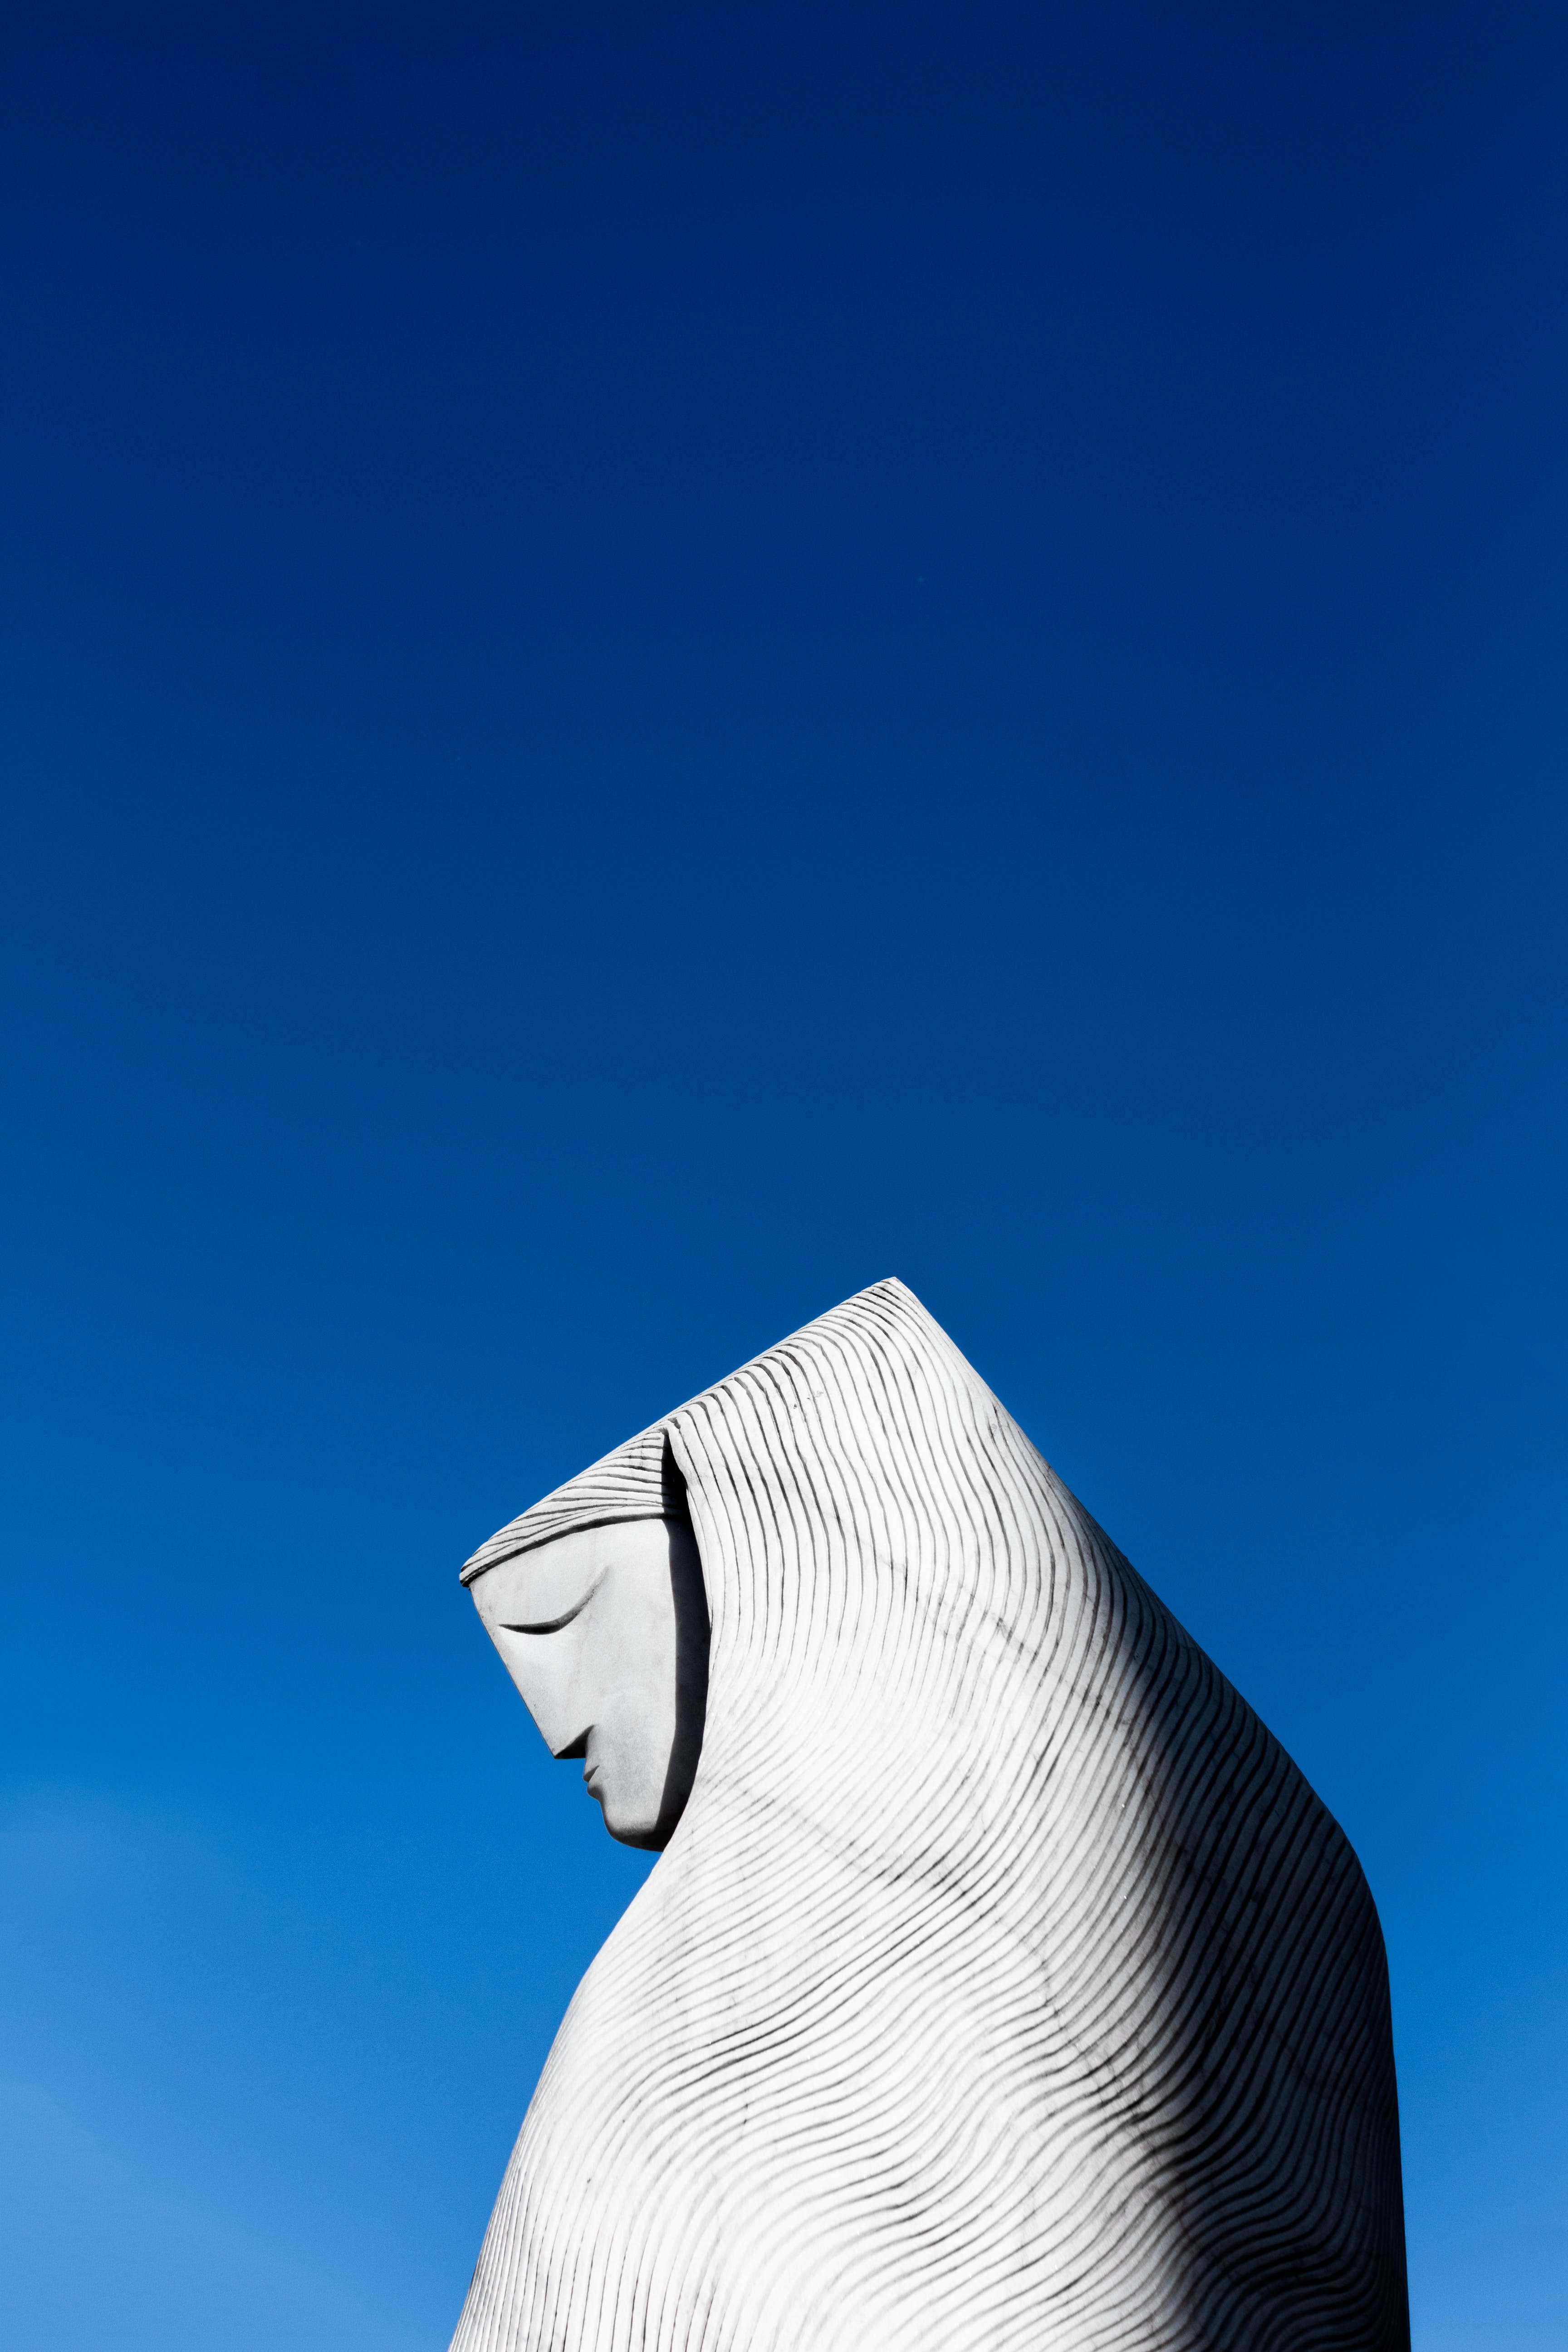 Low Angle Photography of Gray Statue